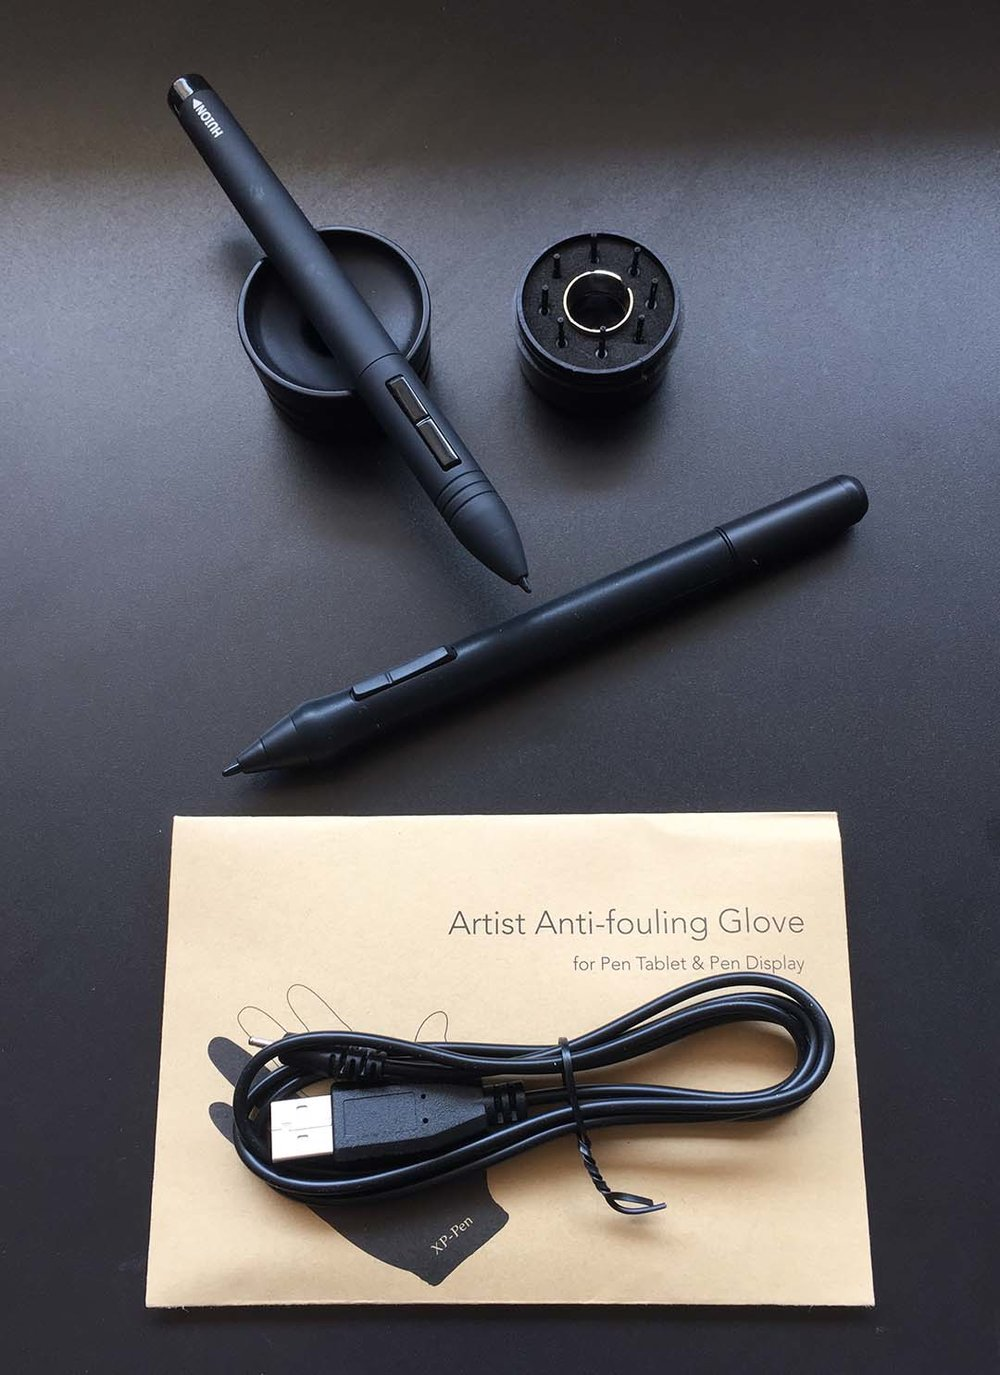 The Artist 16 ships with two pens, a pen holder, eight spare nibs, and artist's glove among several other accessories and cables. The top pen pictured above is the compatible Huion GT-220 pen.